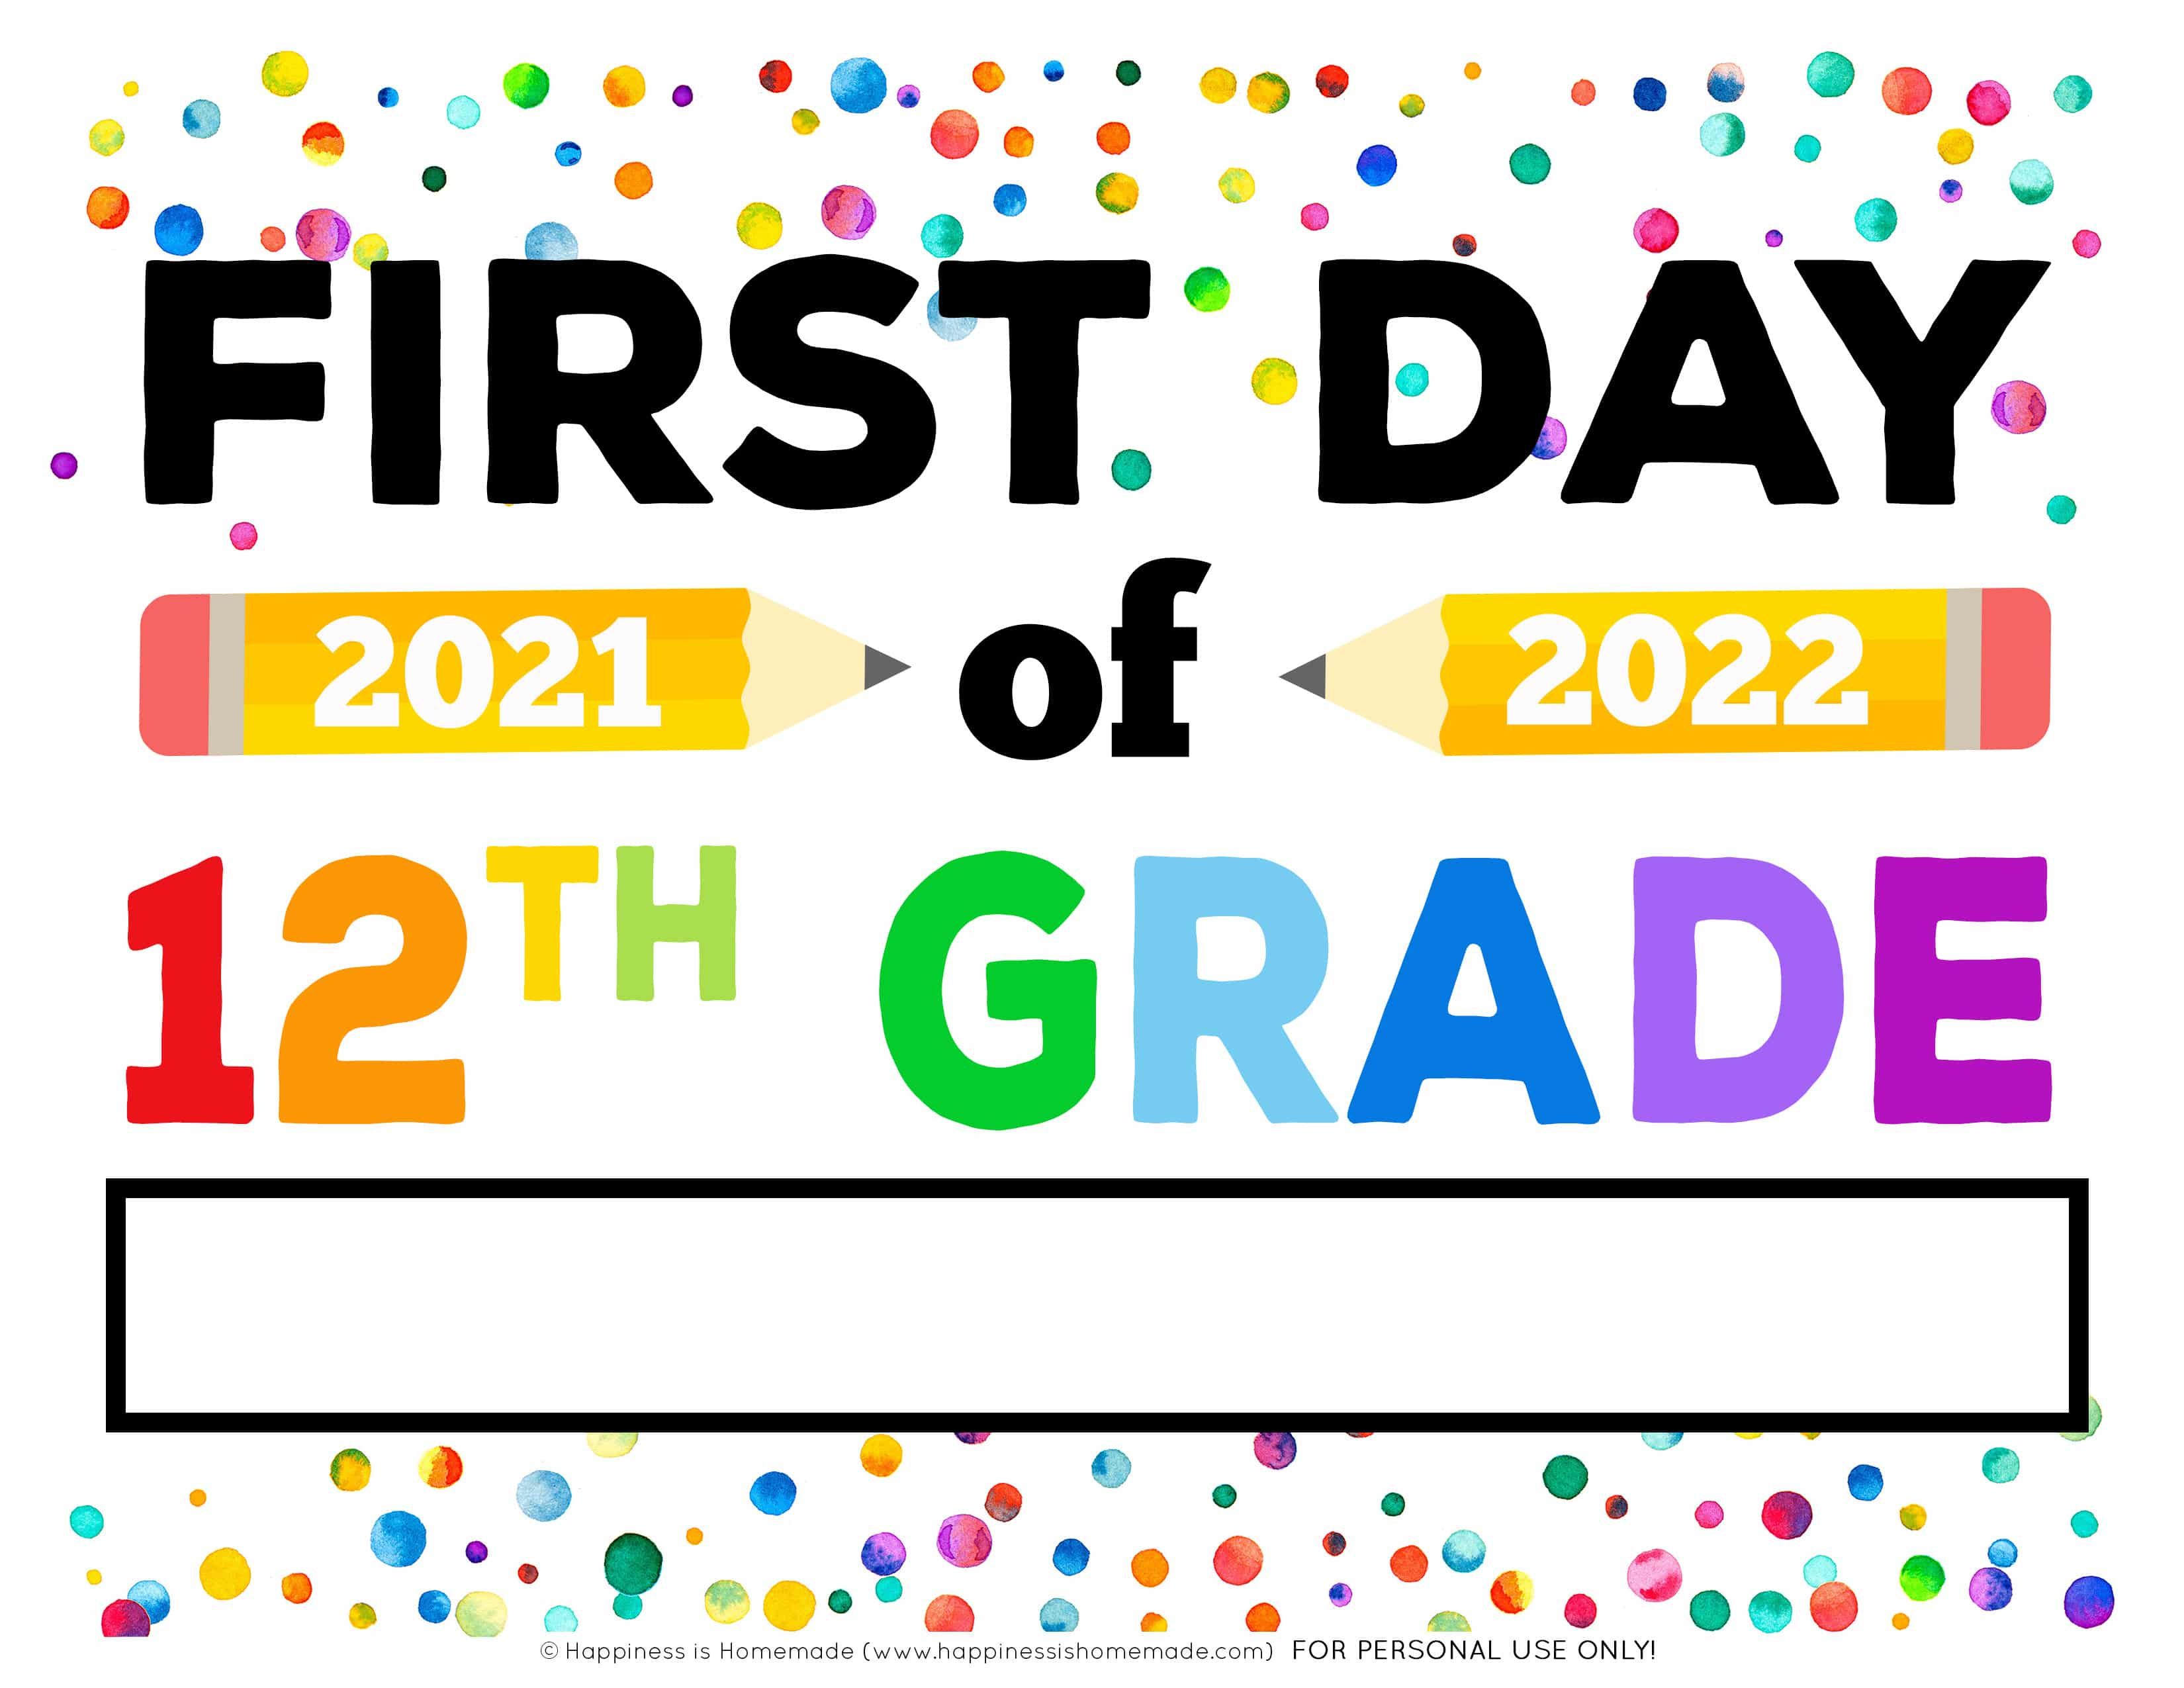 """""""First Day of 12th Grade 2021 - 2022"""" free printable first day of school sign with fill in the blank box for distance learning, etc."""